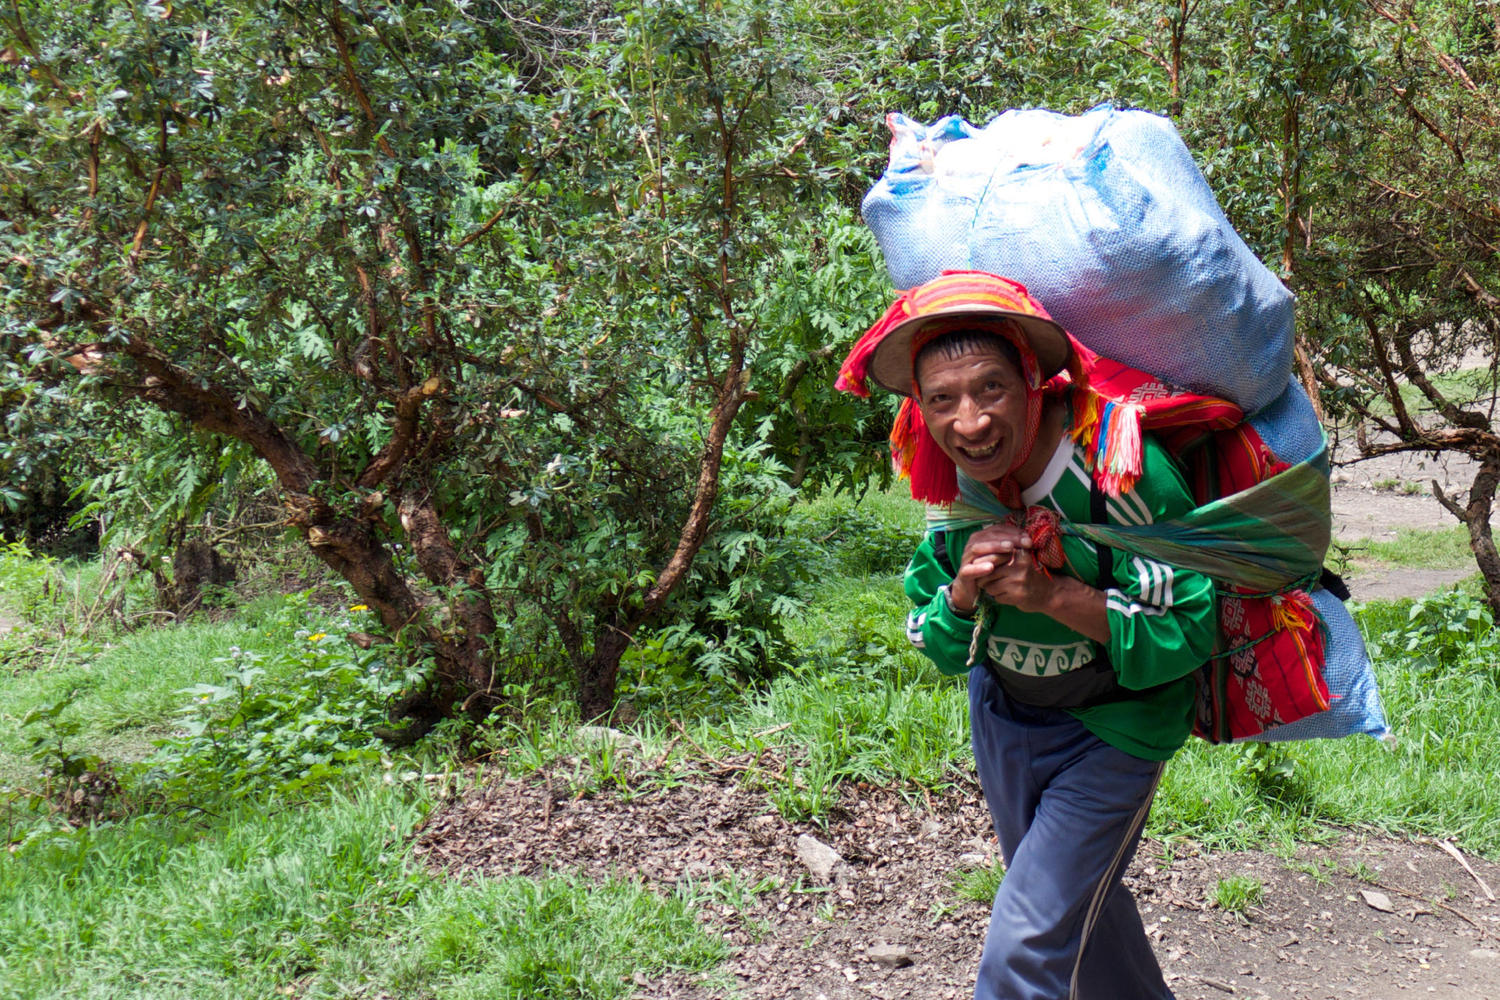 Our Inca Trail porters work incredibly hard behind the scenes